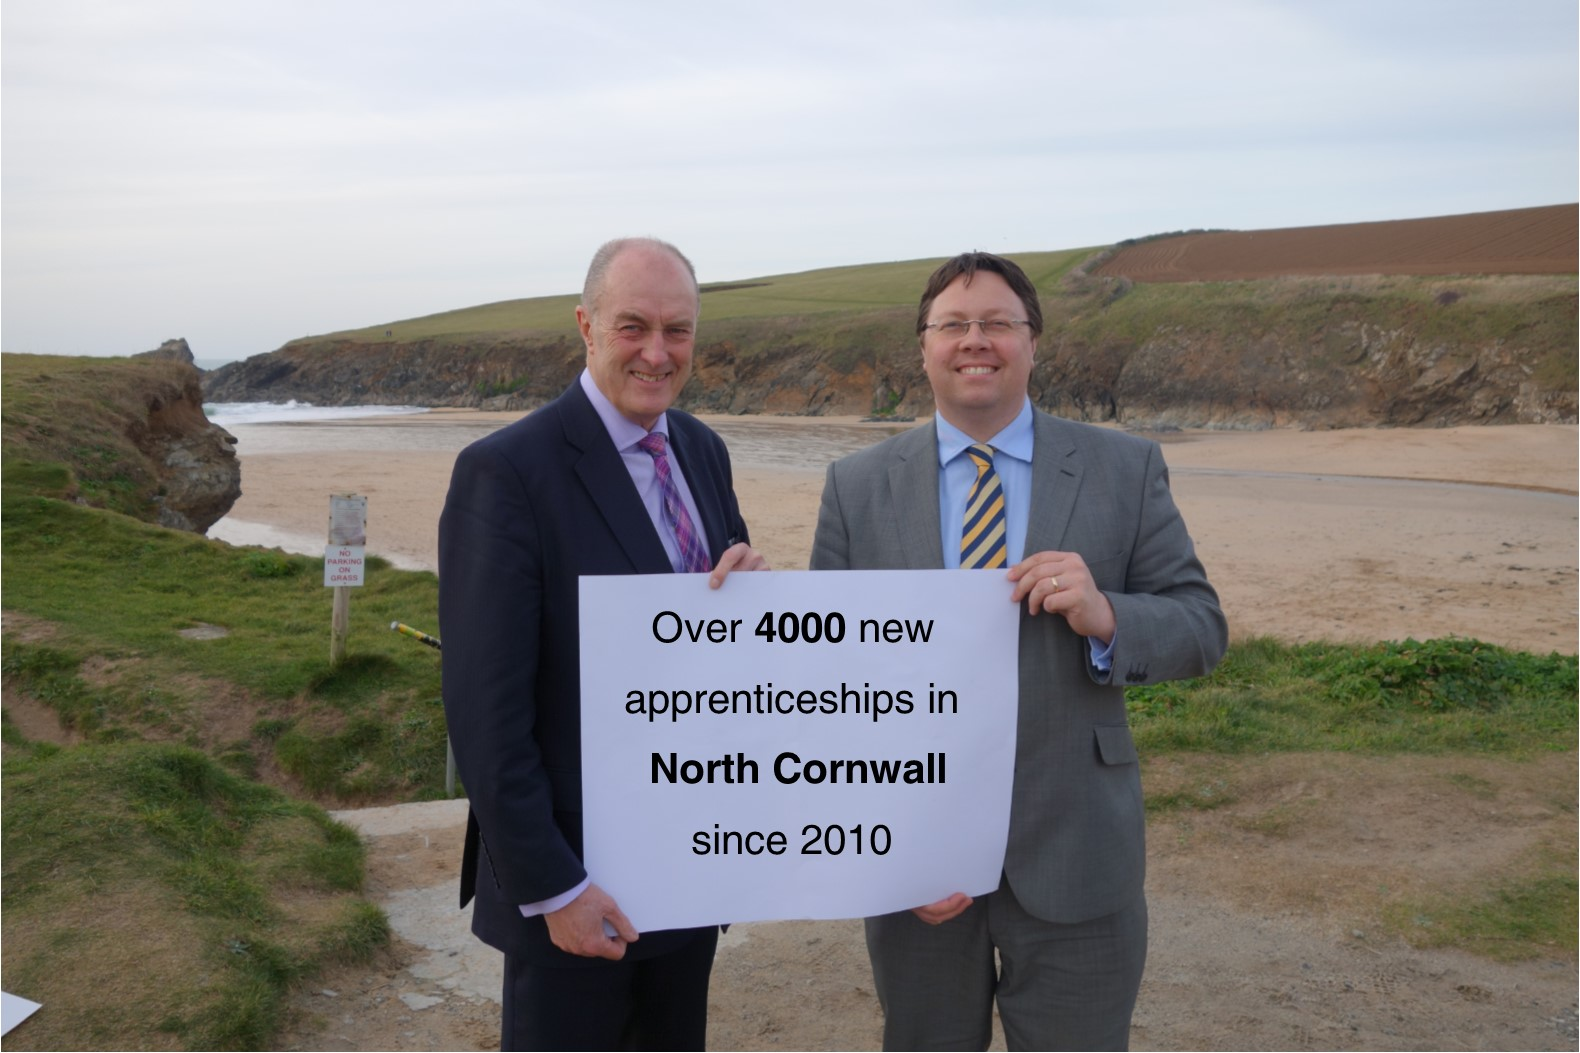 4_000_new_apprenticeships_in_North_Cornwall.jpg